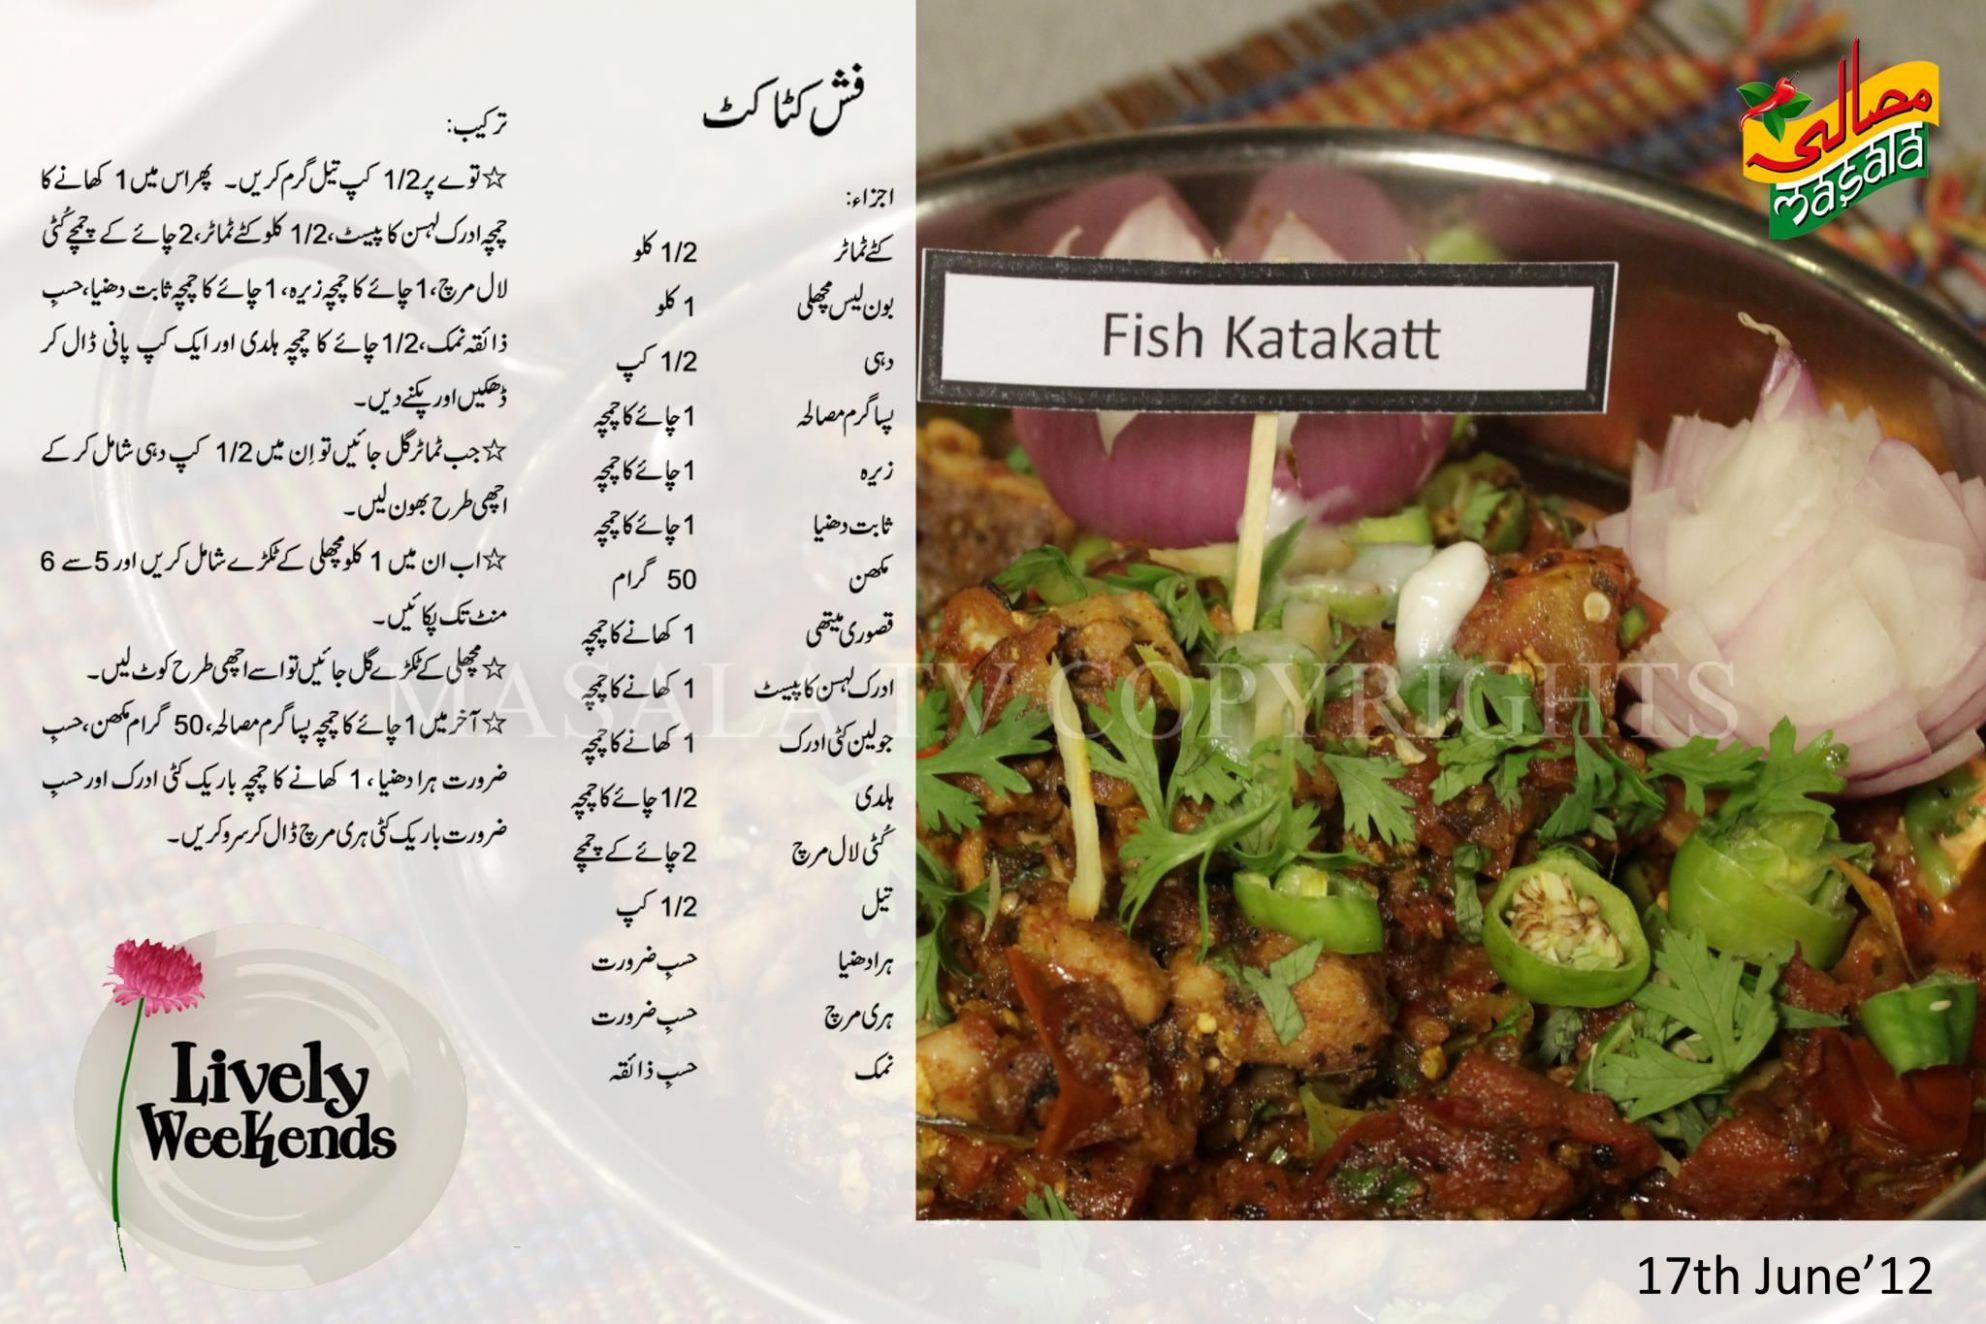 Pin by Fahmida Hashmi on Recipe | Masala tv recipe, Fish recipes ..